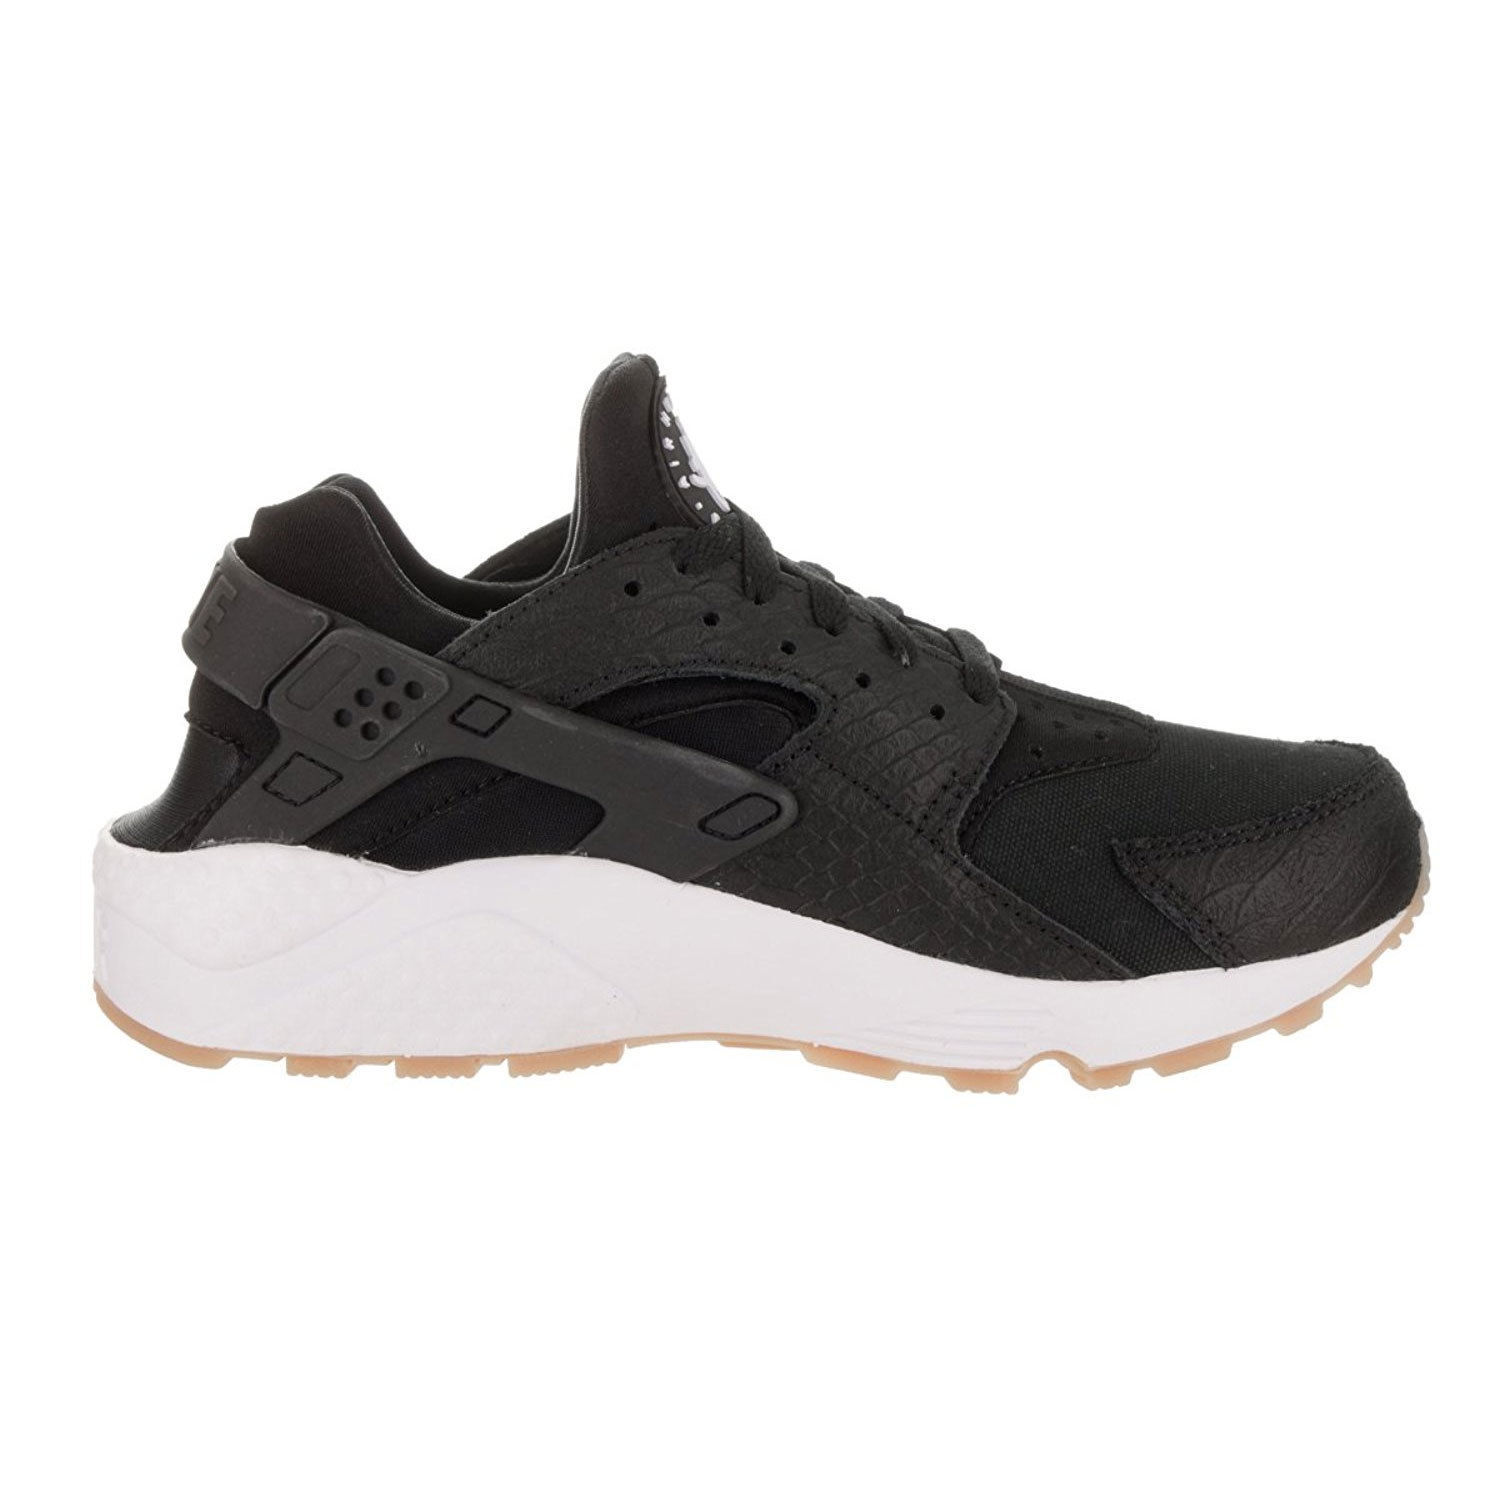 Nike Women's Air Huarache Run Black/White and similar items. S l1600